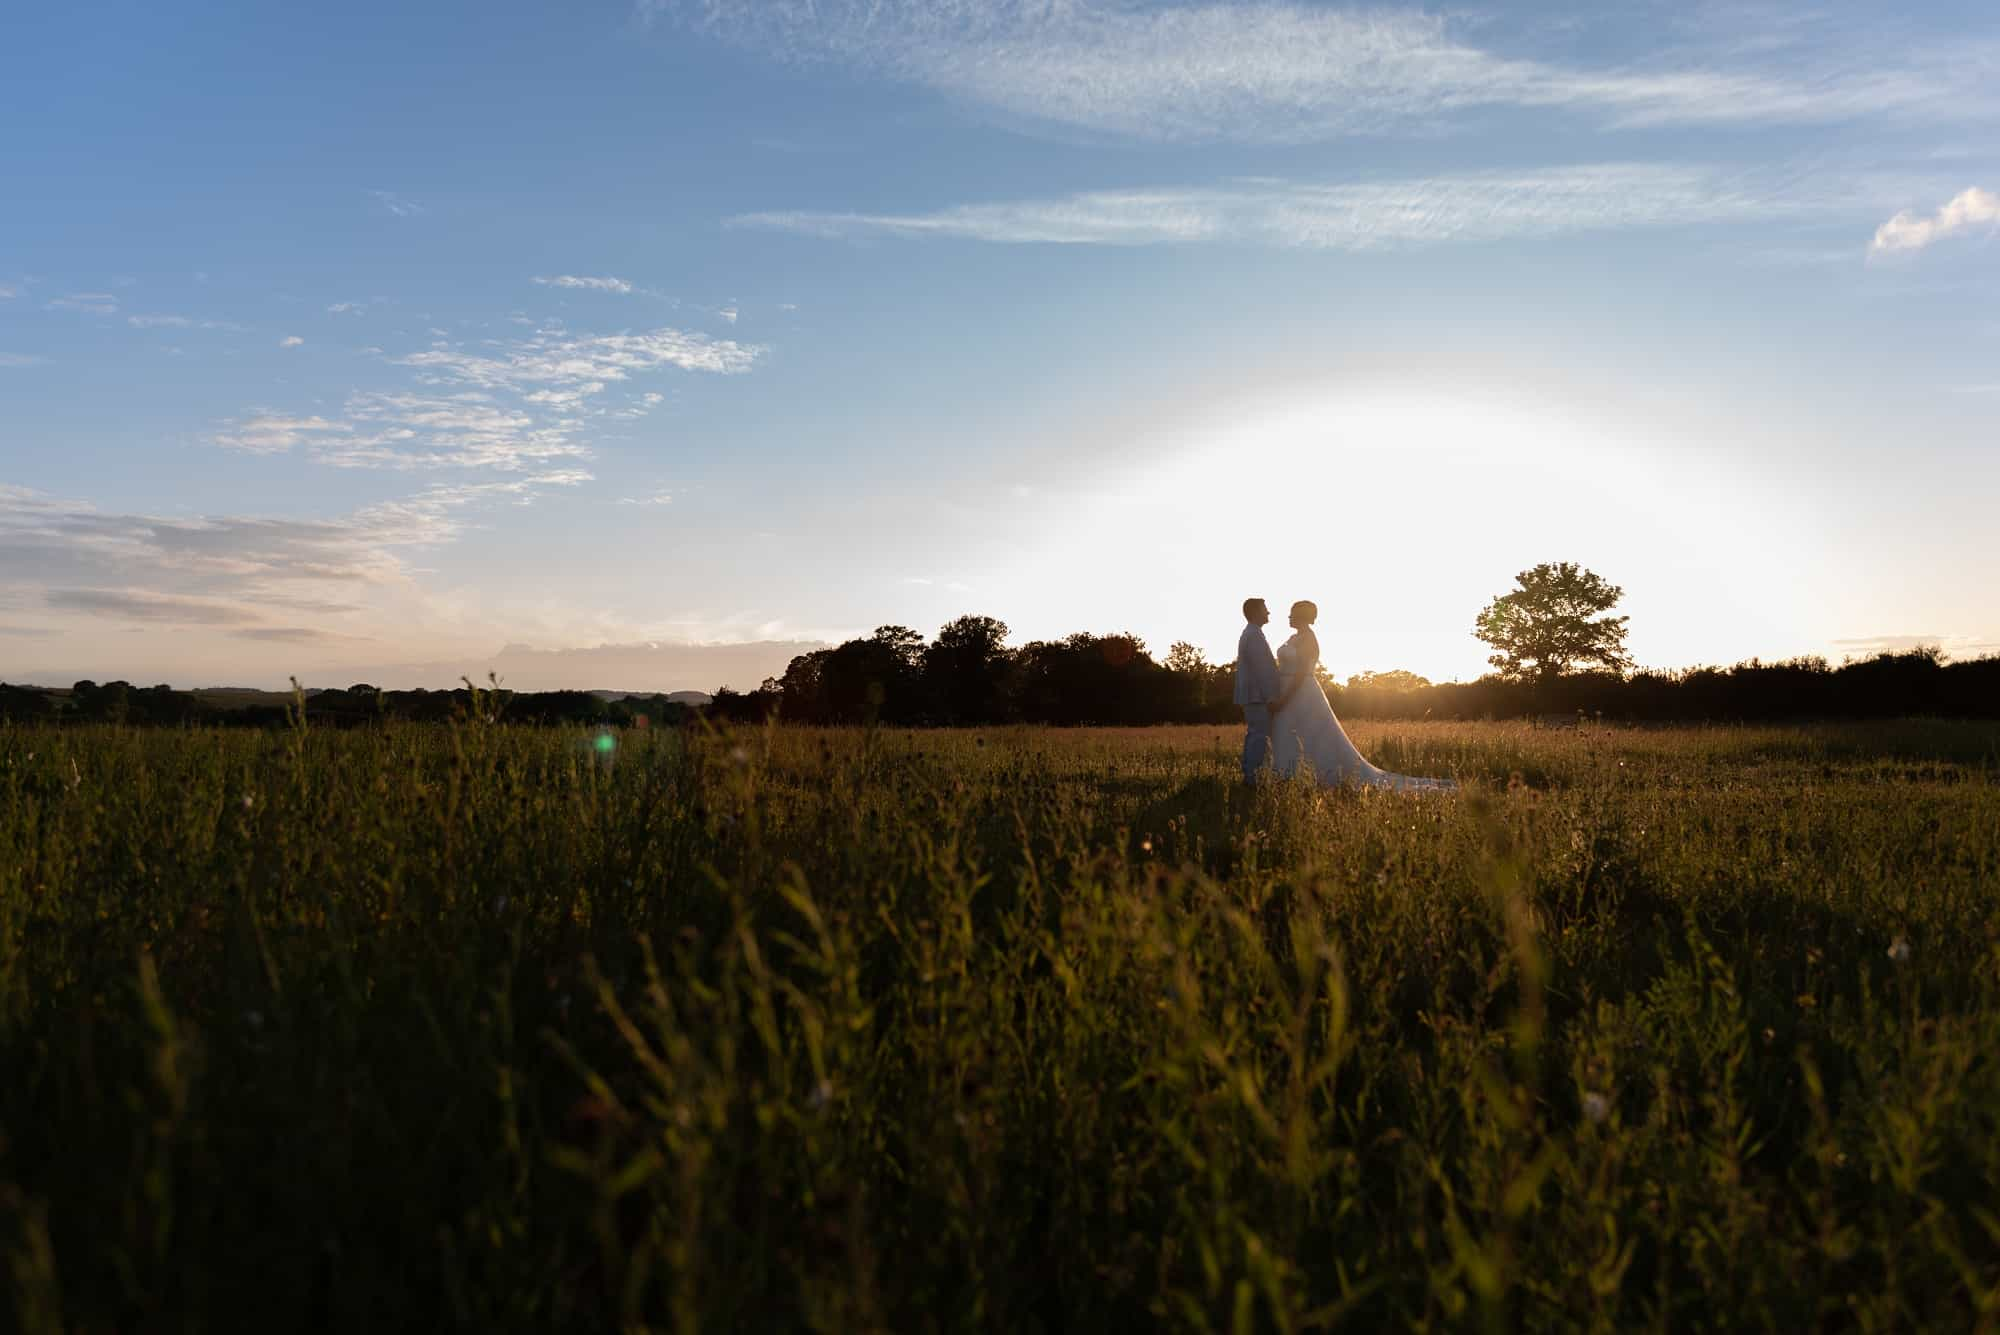 Landscape shot at Sunset in a field in Hawk Conservancy in Andover, Hampshire. couple shots of them being romantic and standing close together on their wedding day.